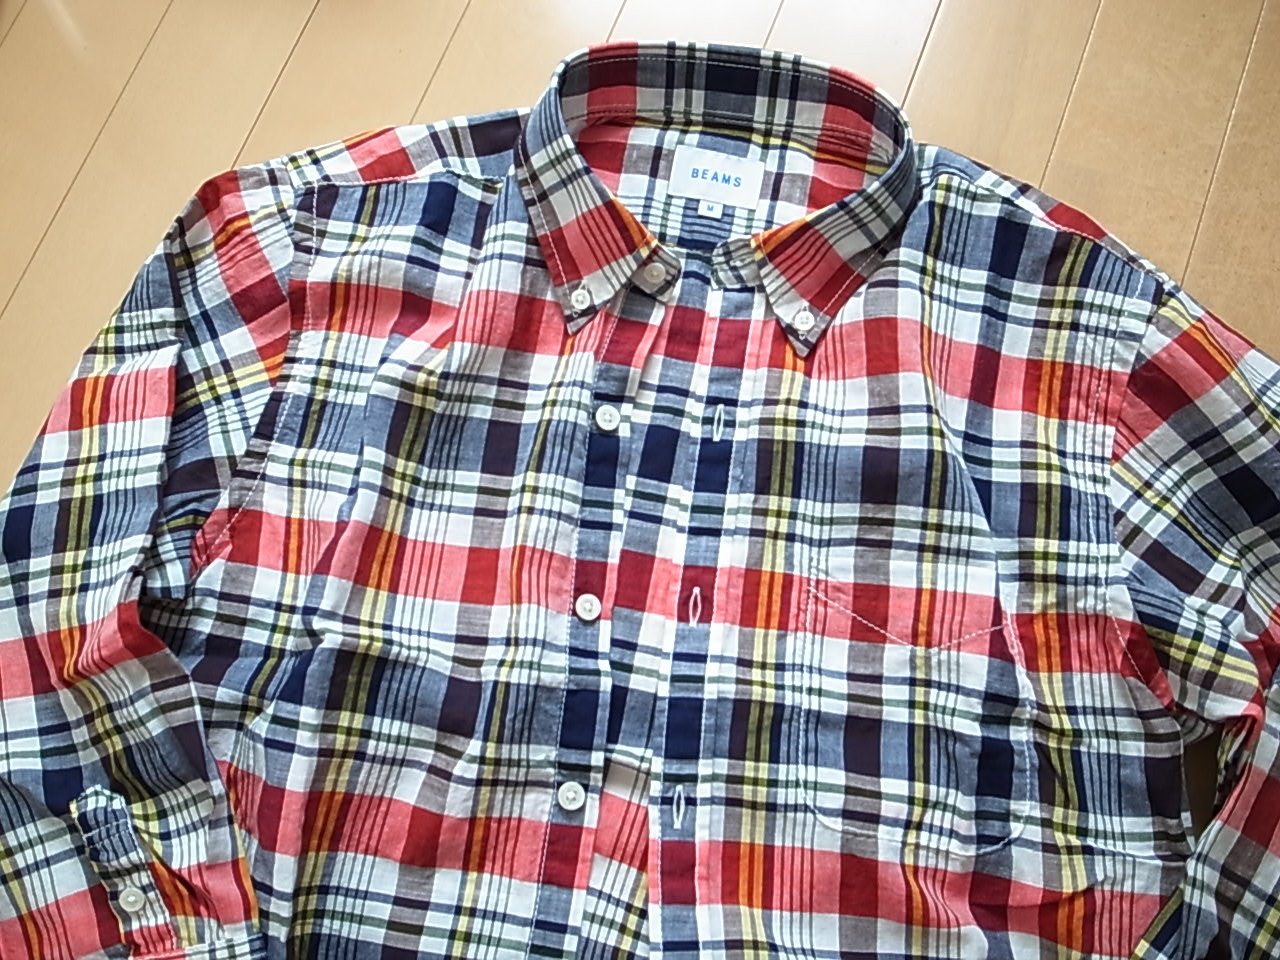 Beams men shirts 6